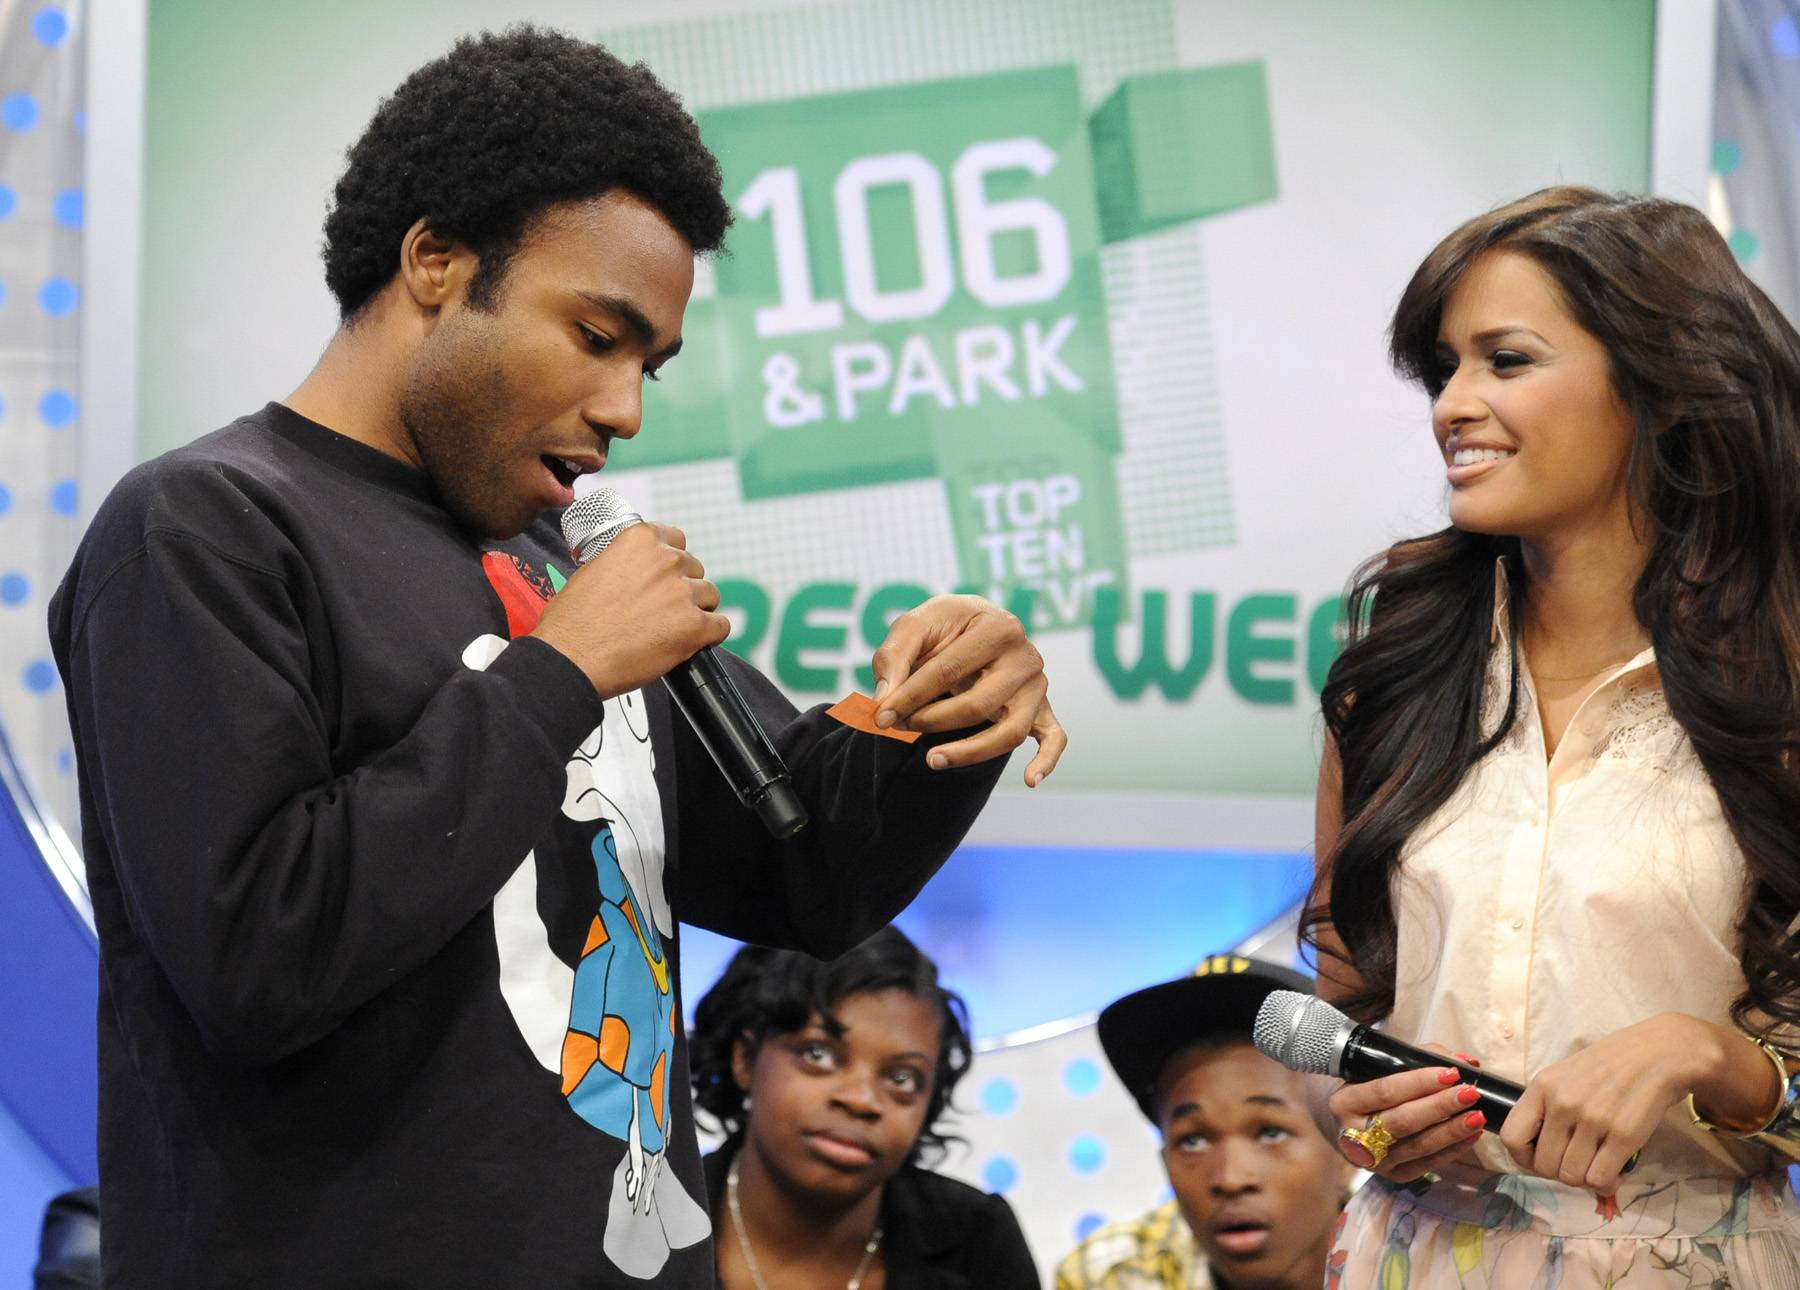 OK Now - Childish Gambino picks out of the Bowl of Randomness with Rocsi Diaz and Terrence J at 106 & Park, May 1, 2012. (Photo: John Ricard / BET)